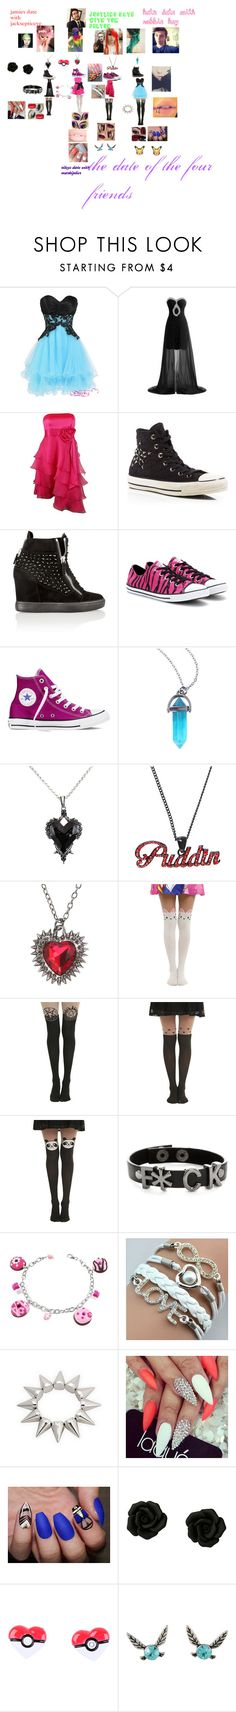 """""""the date of the four friends"""" by septiplier-forever ❤ liked on Polyvore featuring Haute Hippie, Converse, Giuseppe Zanotti, Dolci Gioie, Nintendo and Radcliffe"""